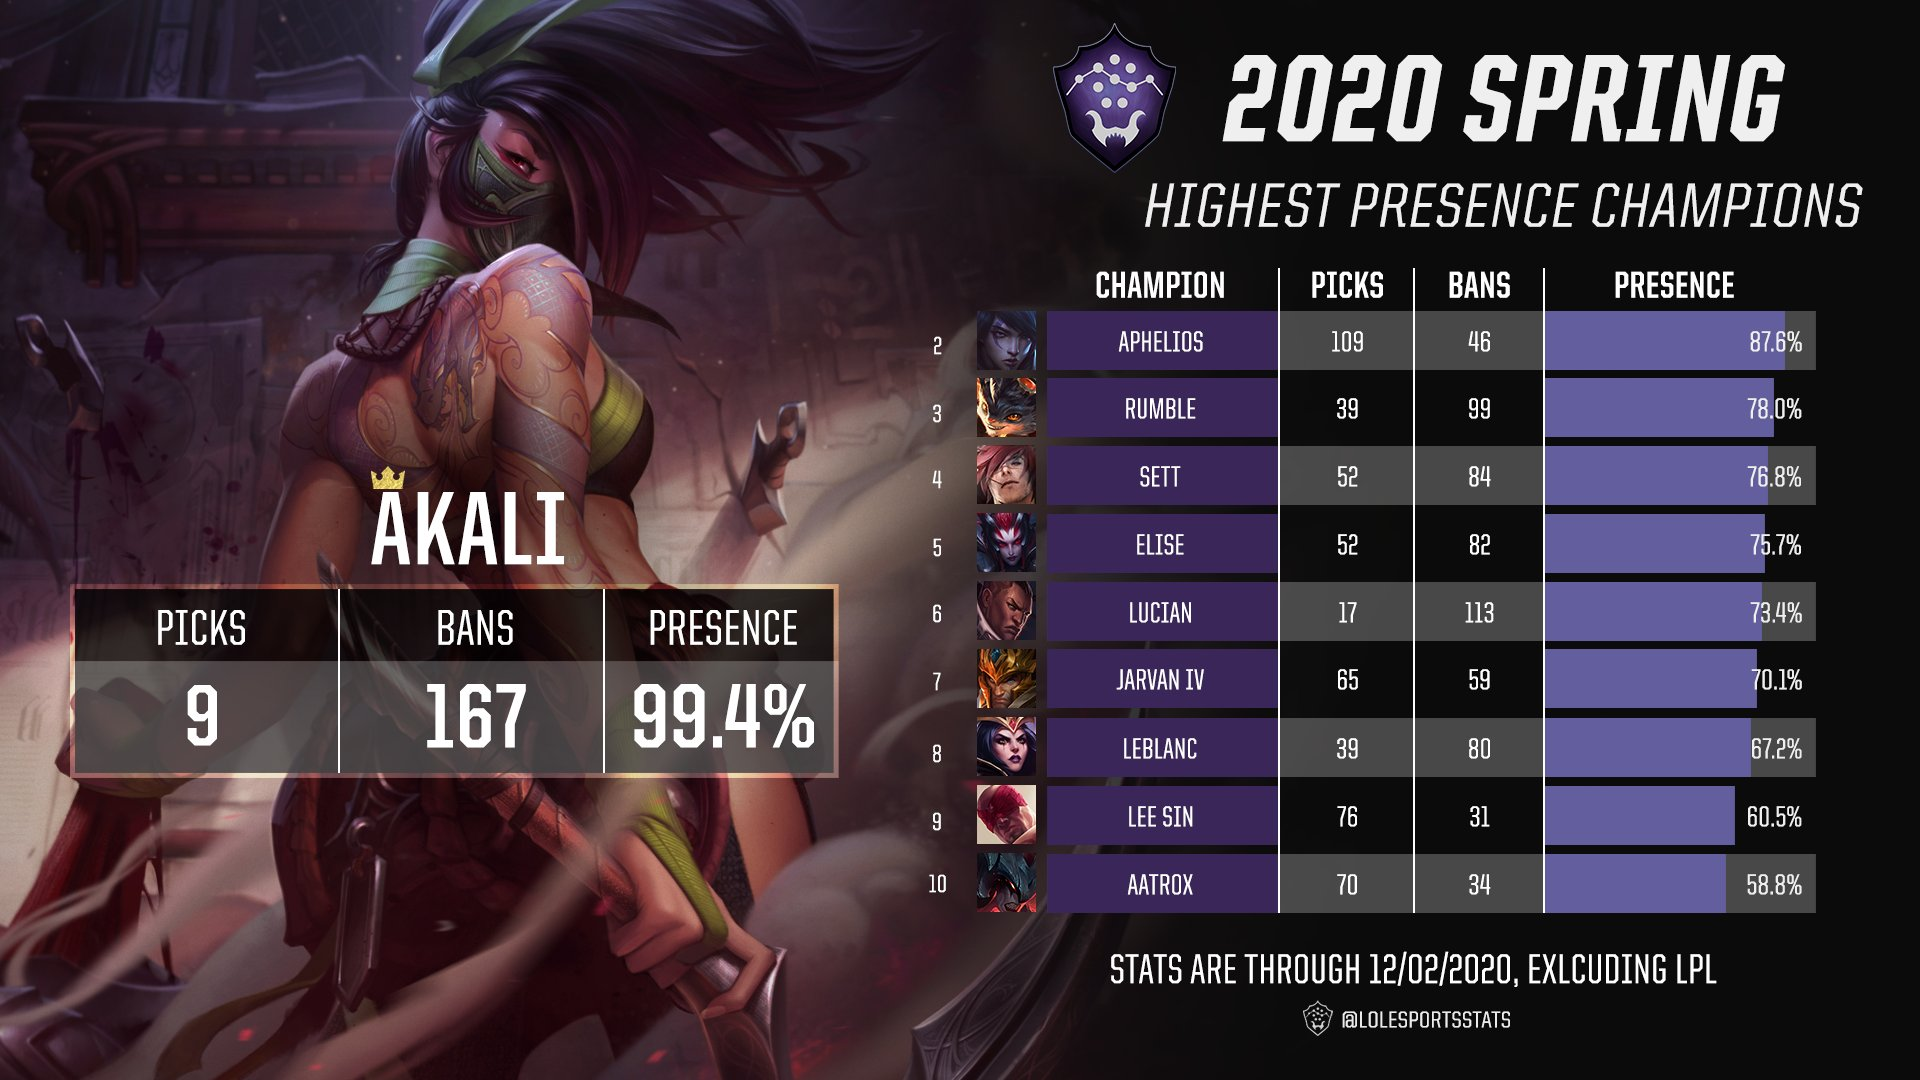 A breakdown of the top 10 champions picked and banned in international leagues. Akali's splash art takes up most of the graphic, as she has the highest presence with 9 Picks and 167 Bans. Stats read:Akali: 99.4% Aphelios: 87.6% Rumble: 78.0% Sett: 76.8% Elise: 75.7% Lucian: 73.4% Jarvan IV: 70.1% LeBlanc: 67.2% Lee Sin: 60.5% Aatrox: 58.8%